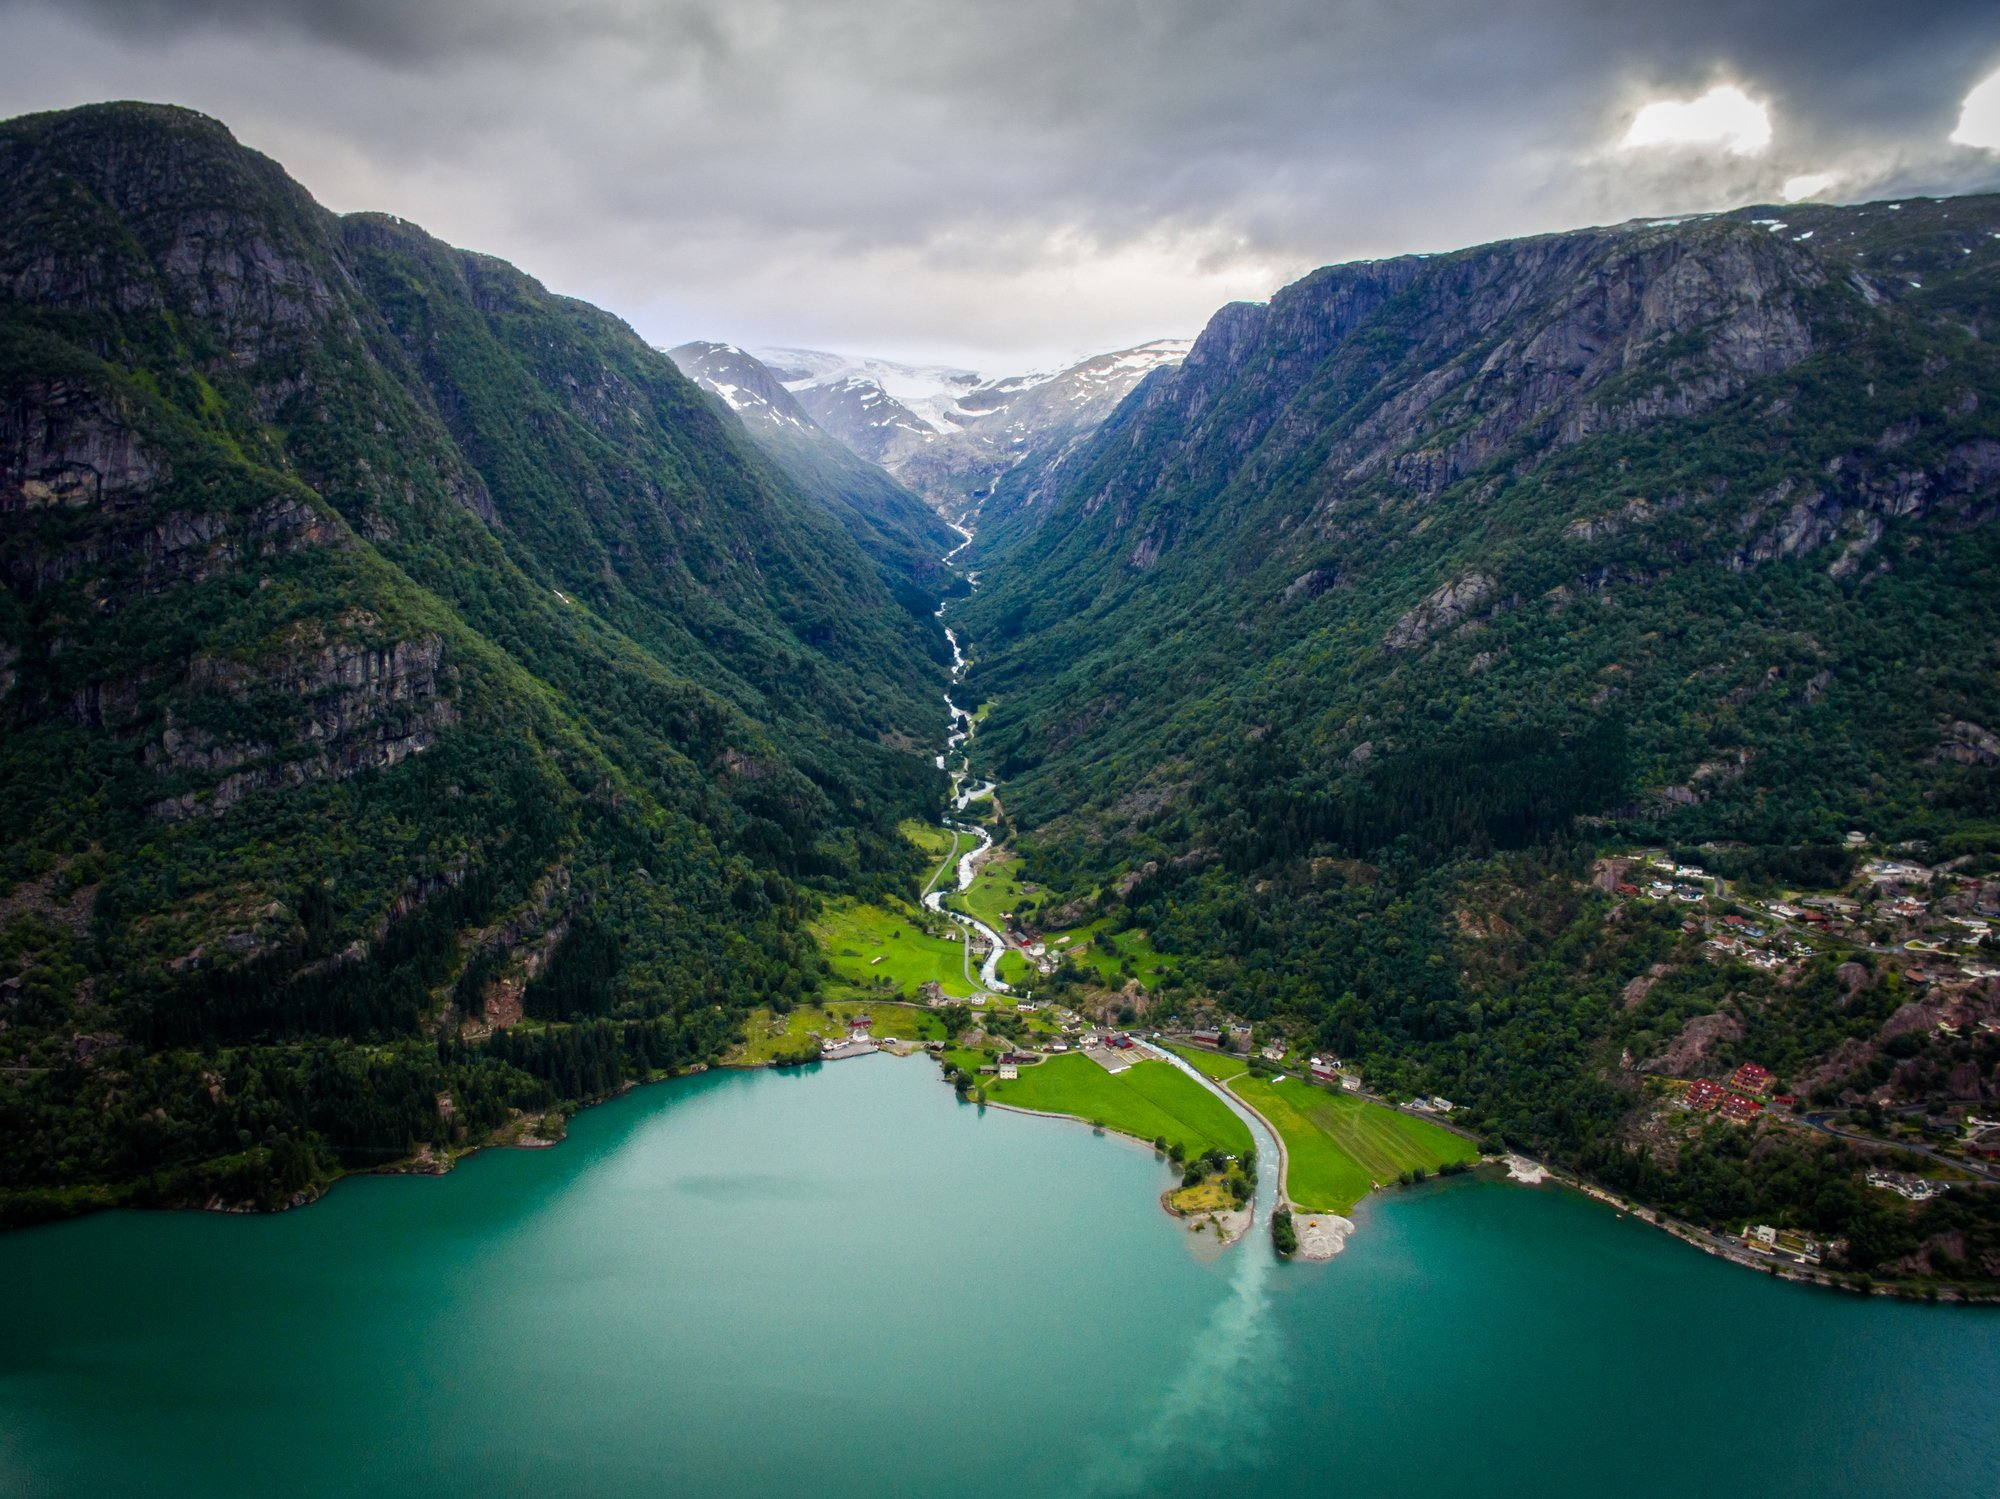 Stunning views in Hordaland, Norway. Photo by Copyright Morten Falch Sortland / Getty Images.